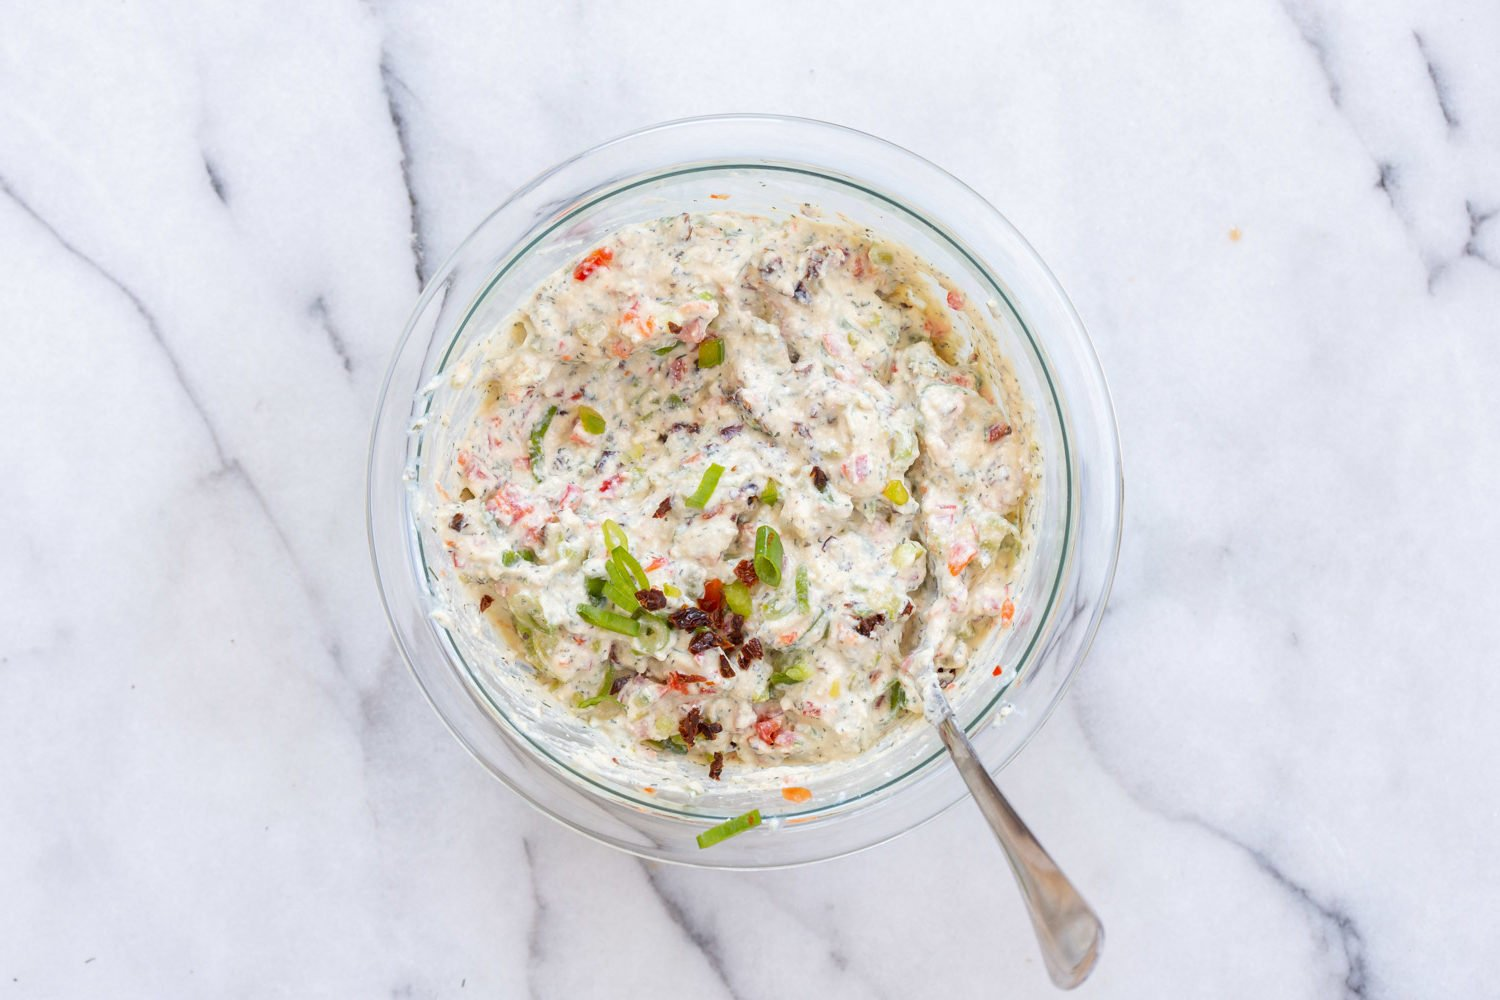 Dairy free cream cheese mixed with veggies in a bowl for our Vegan Tortilla Roll ups recipe